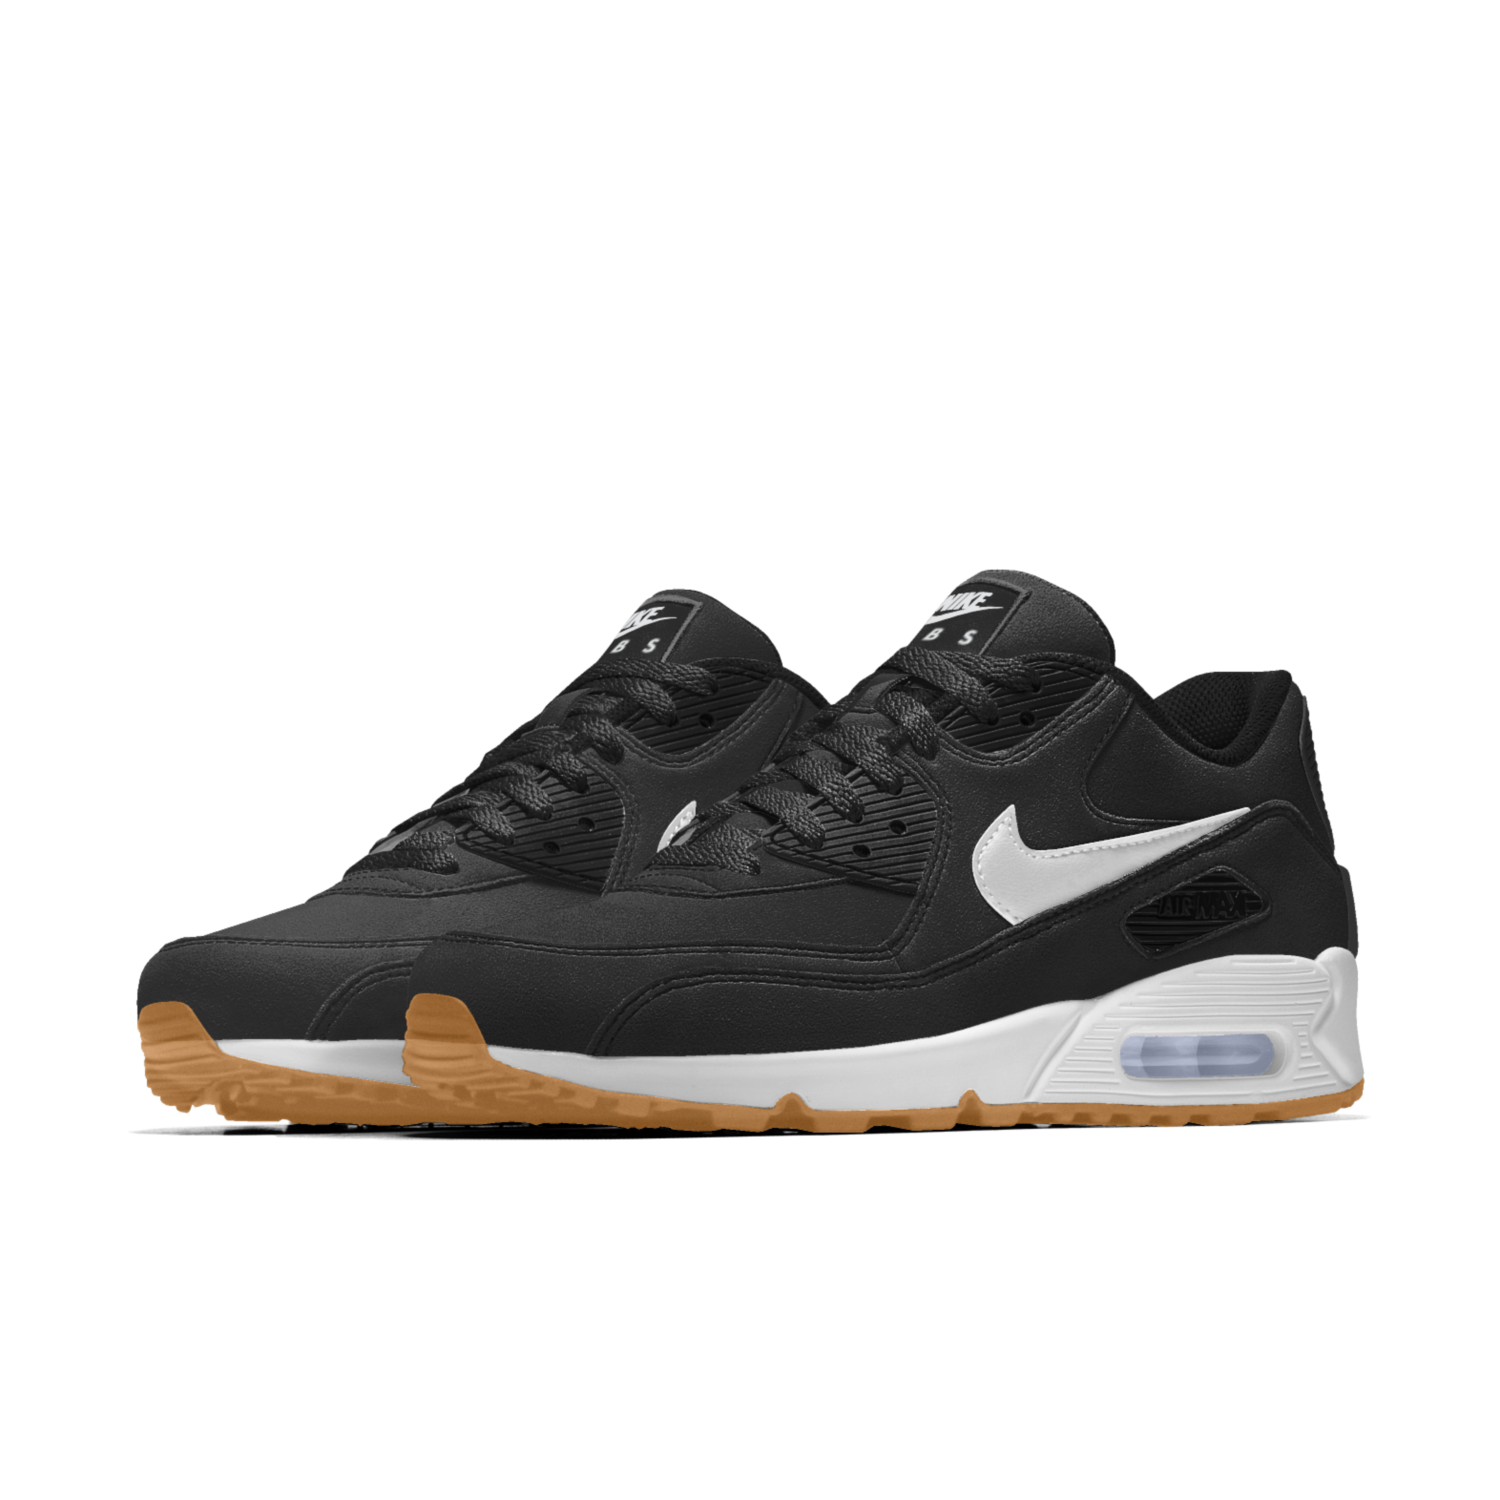 Nike Air Max Thea iD | WHITEADDICTED